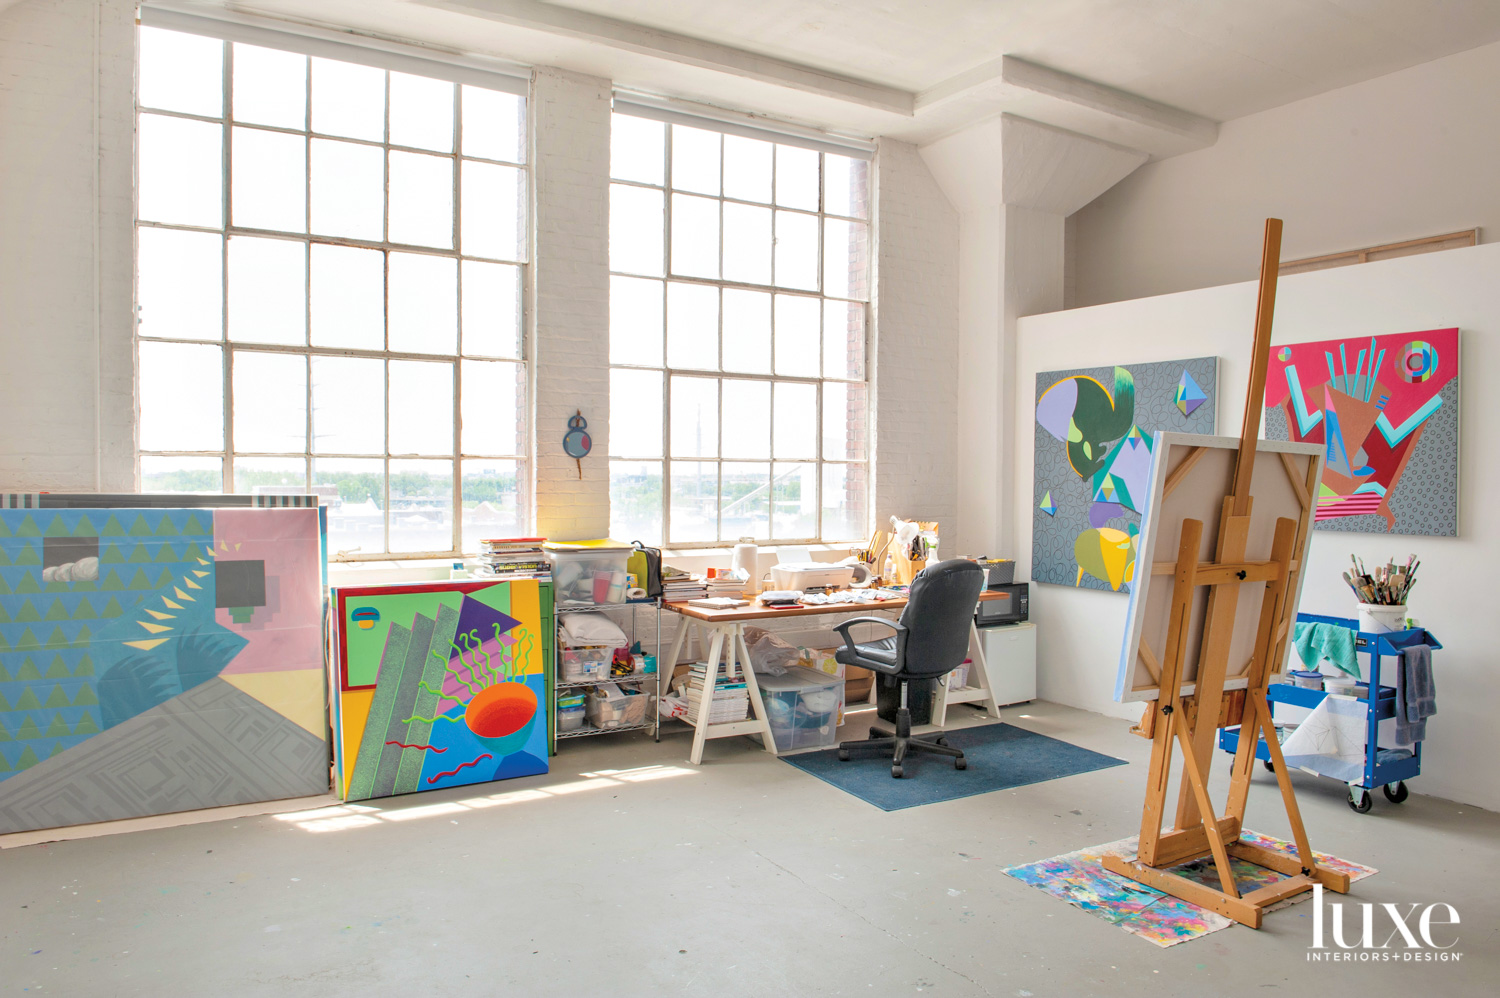 An art studio with large windows. There are multiple colorful hanging and leaning on the walls.